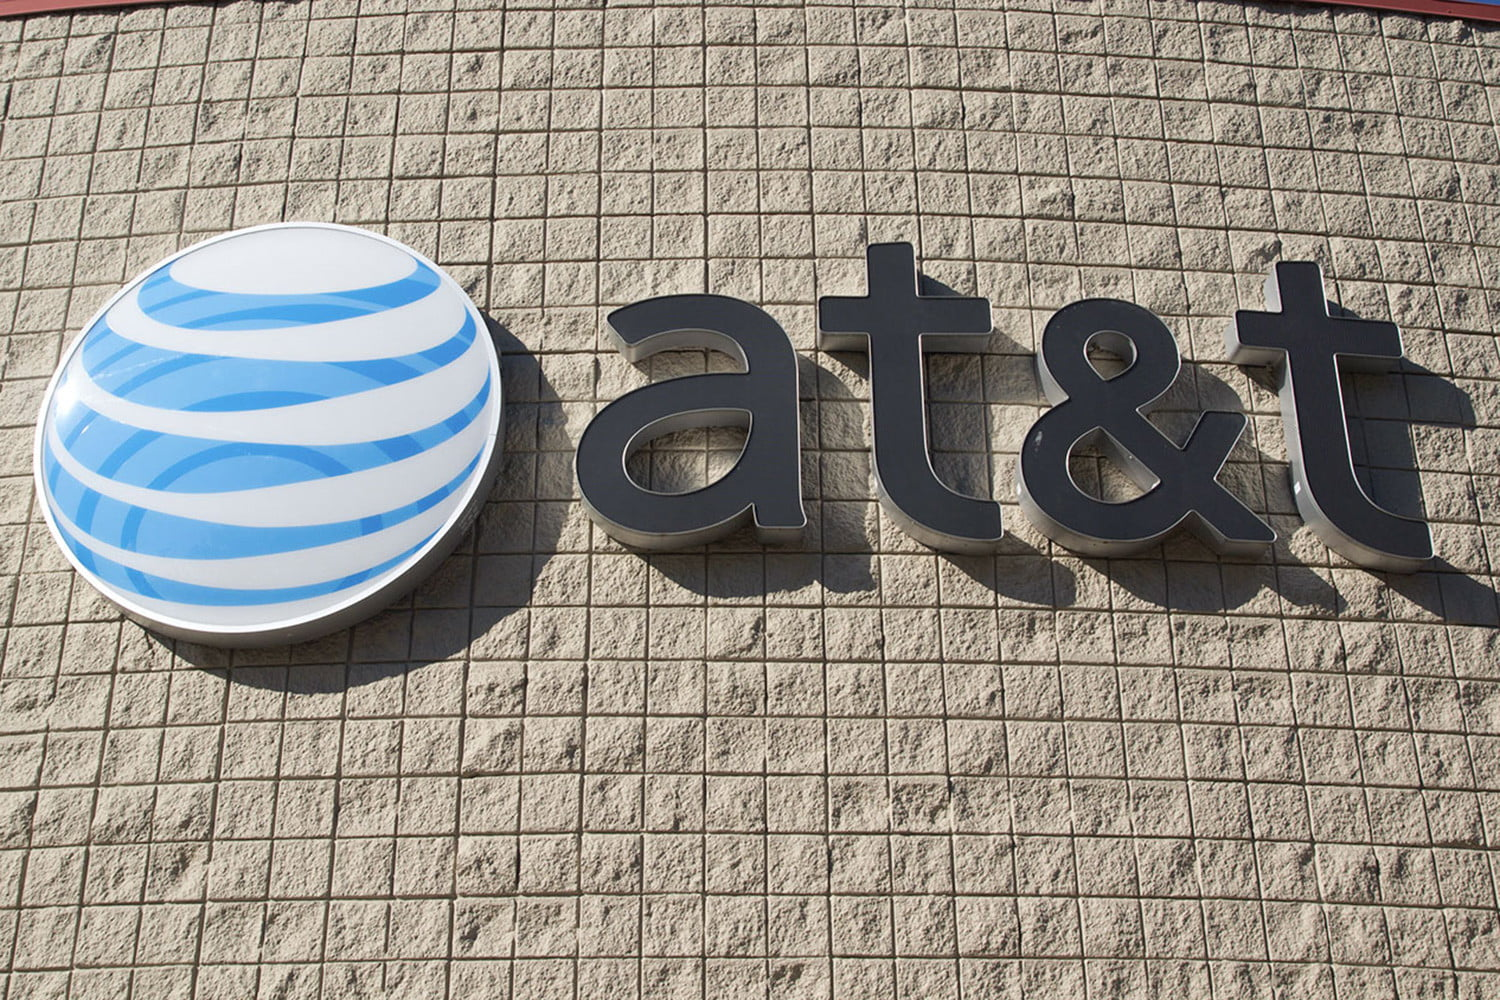 ATT on Olympics: This was a Pretty Easy Call'